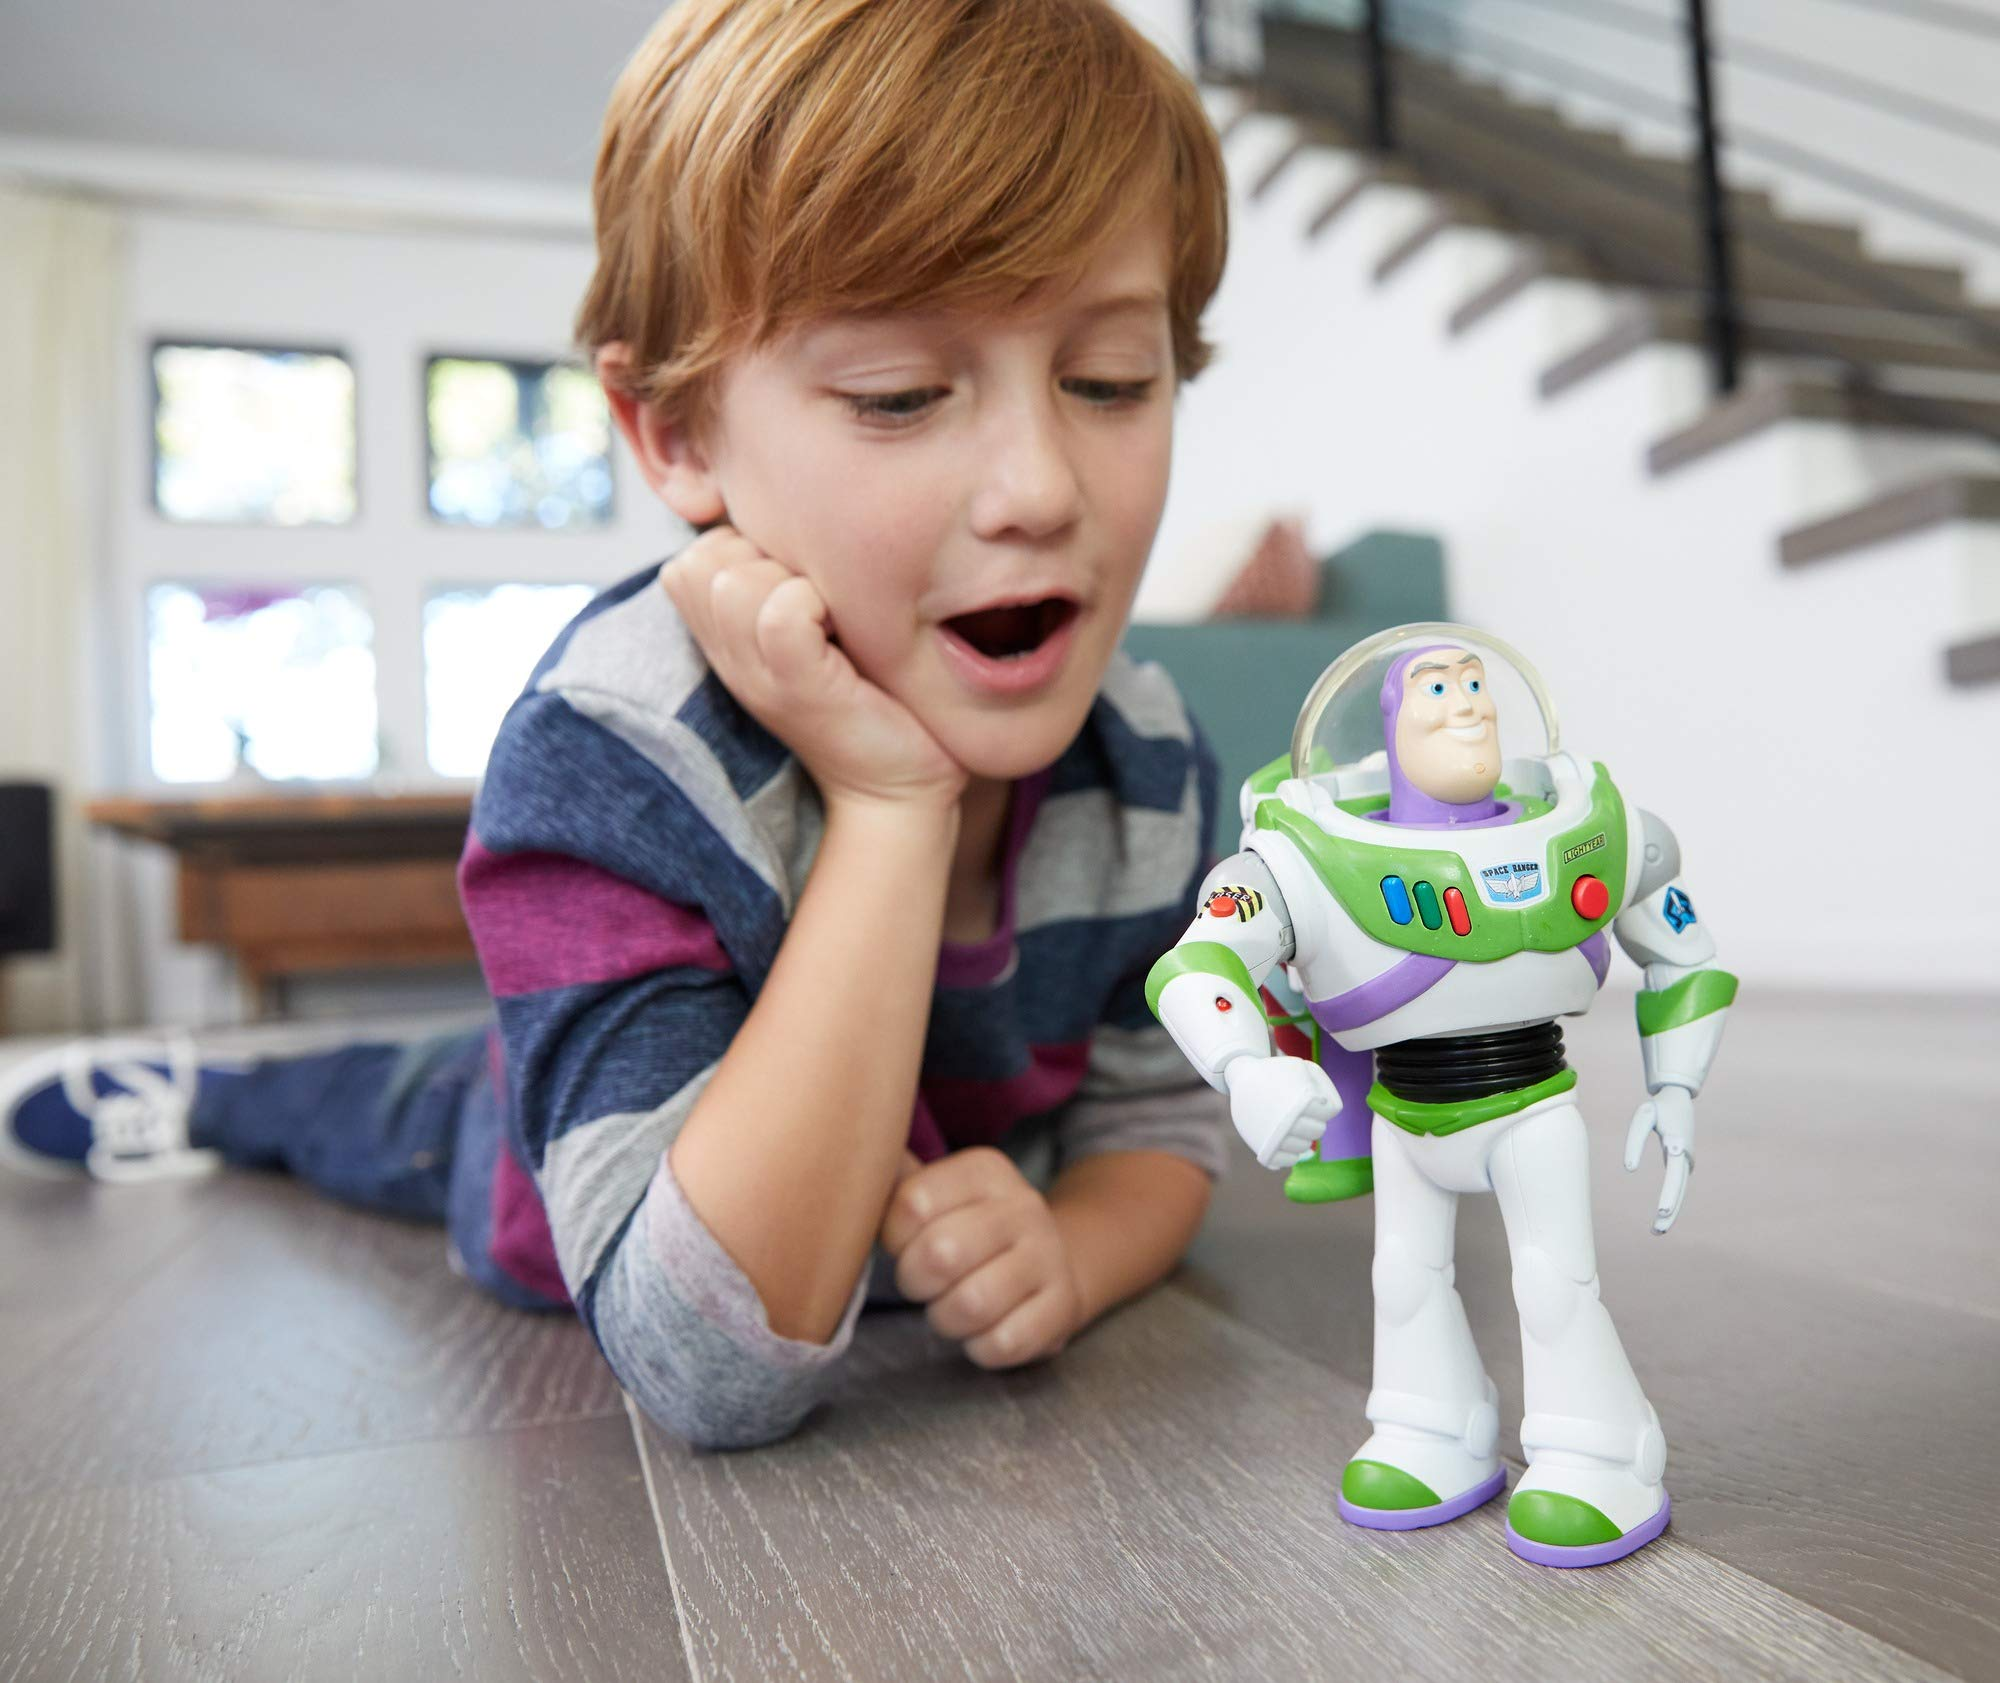 Disney Pixar Toy Story Ultimate Walking Buzz Lightyear, 7'' by Toy Story (Image #12)